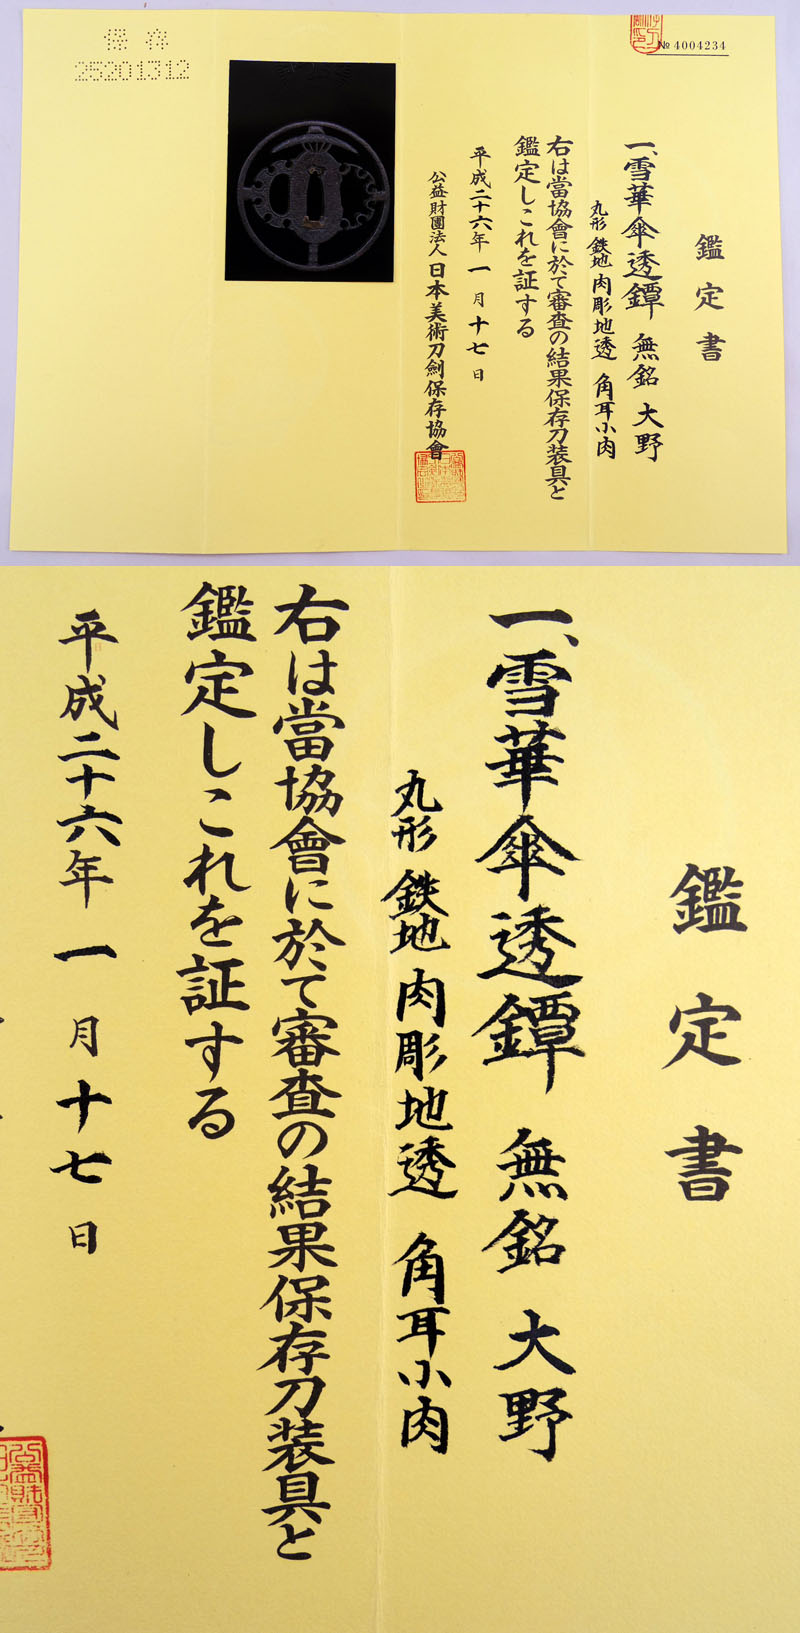 雪華傘透鍔 無銘 大野 Picture of Certificate